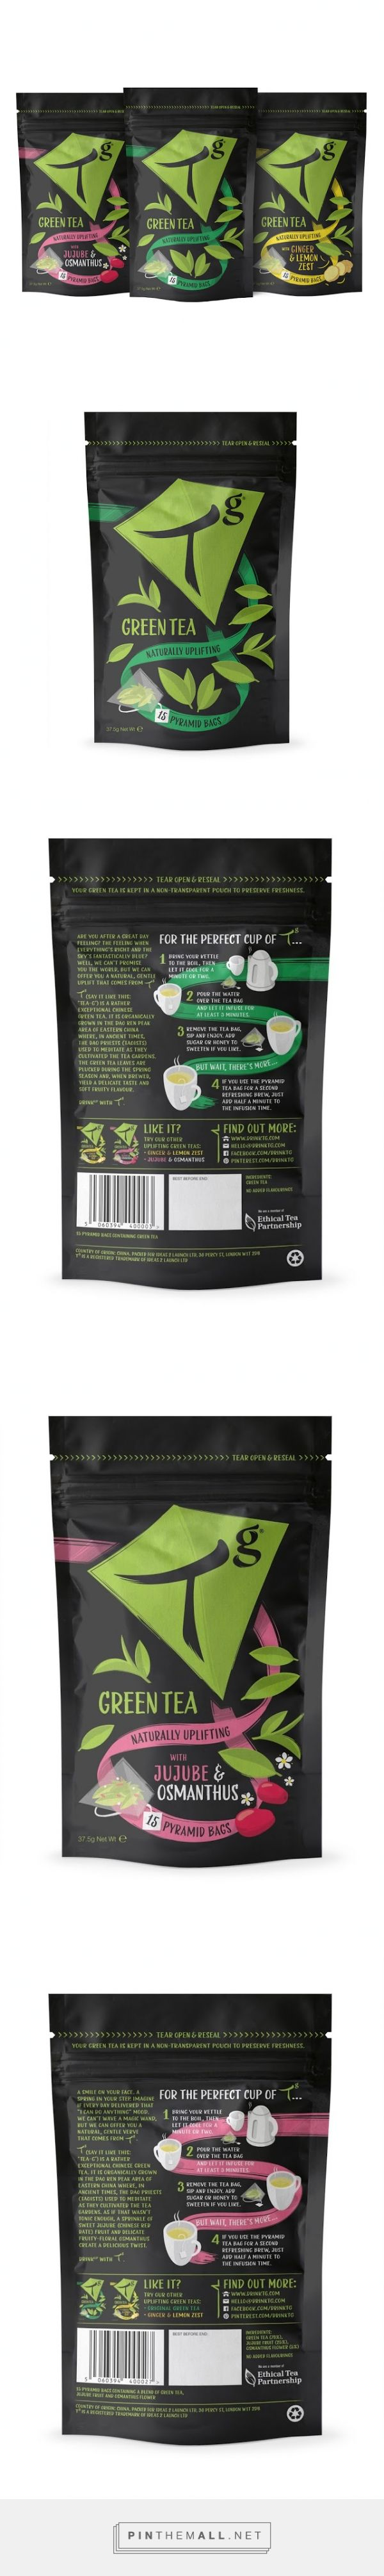 Tg Green Tea Pouches - Packaging of the World - Creative Package Design Gallery - http://www.packagingoftheworld.com/2015/05/tg-green-tea-pouches.html